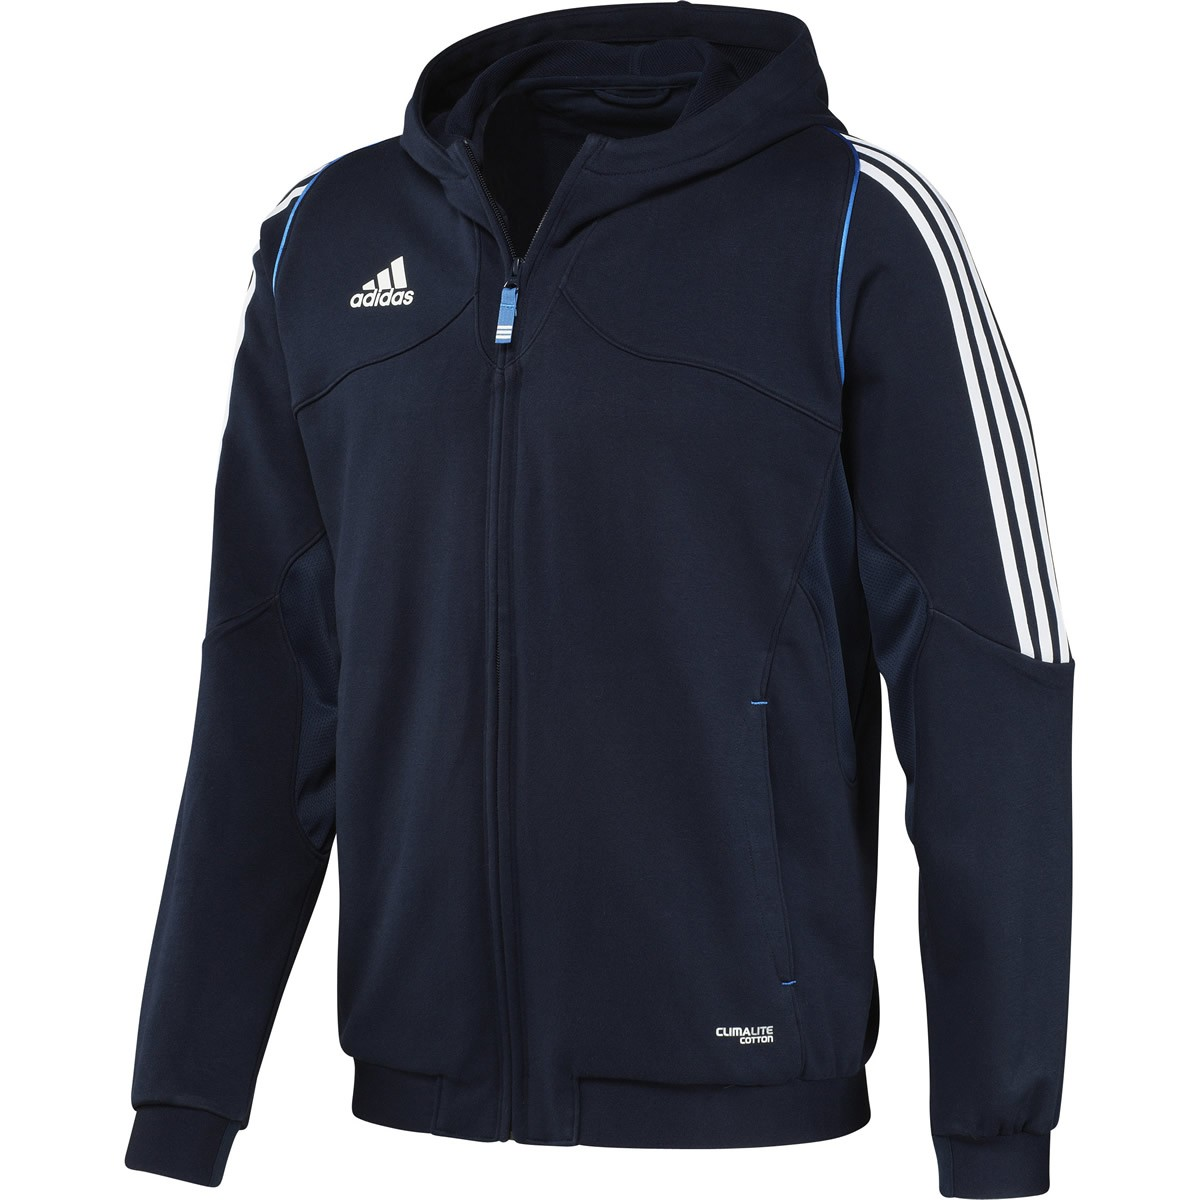 adidas m nner t12 team hoodie hoody herren kapuzenpullover sweatjacke sale. Black Bedroom Furniture Sets. Home Design Ideas